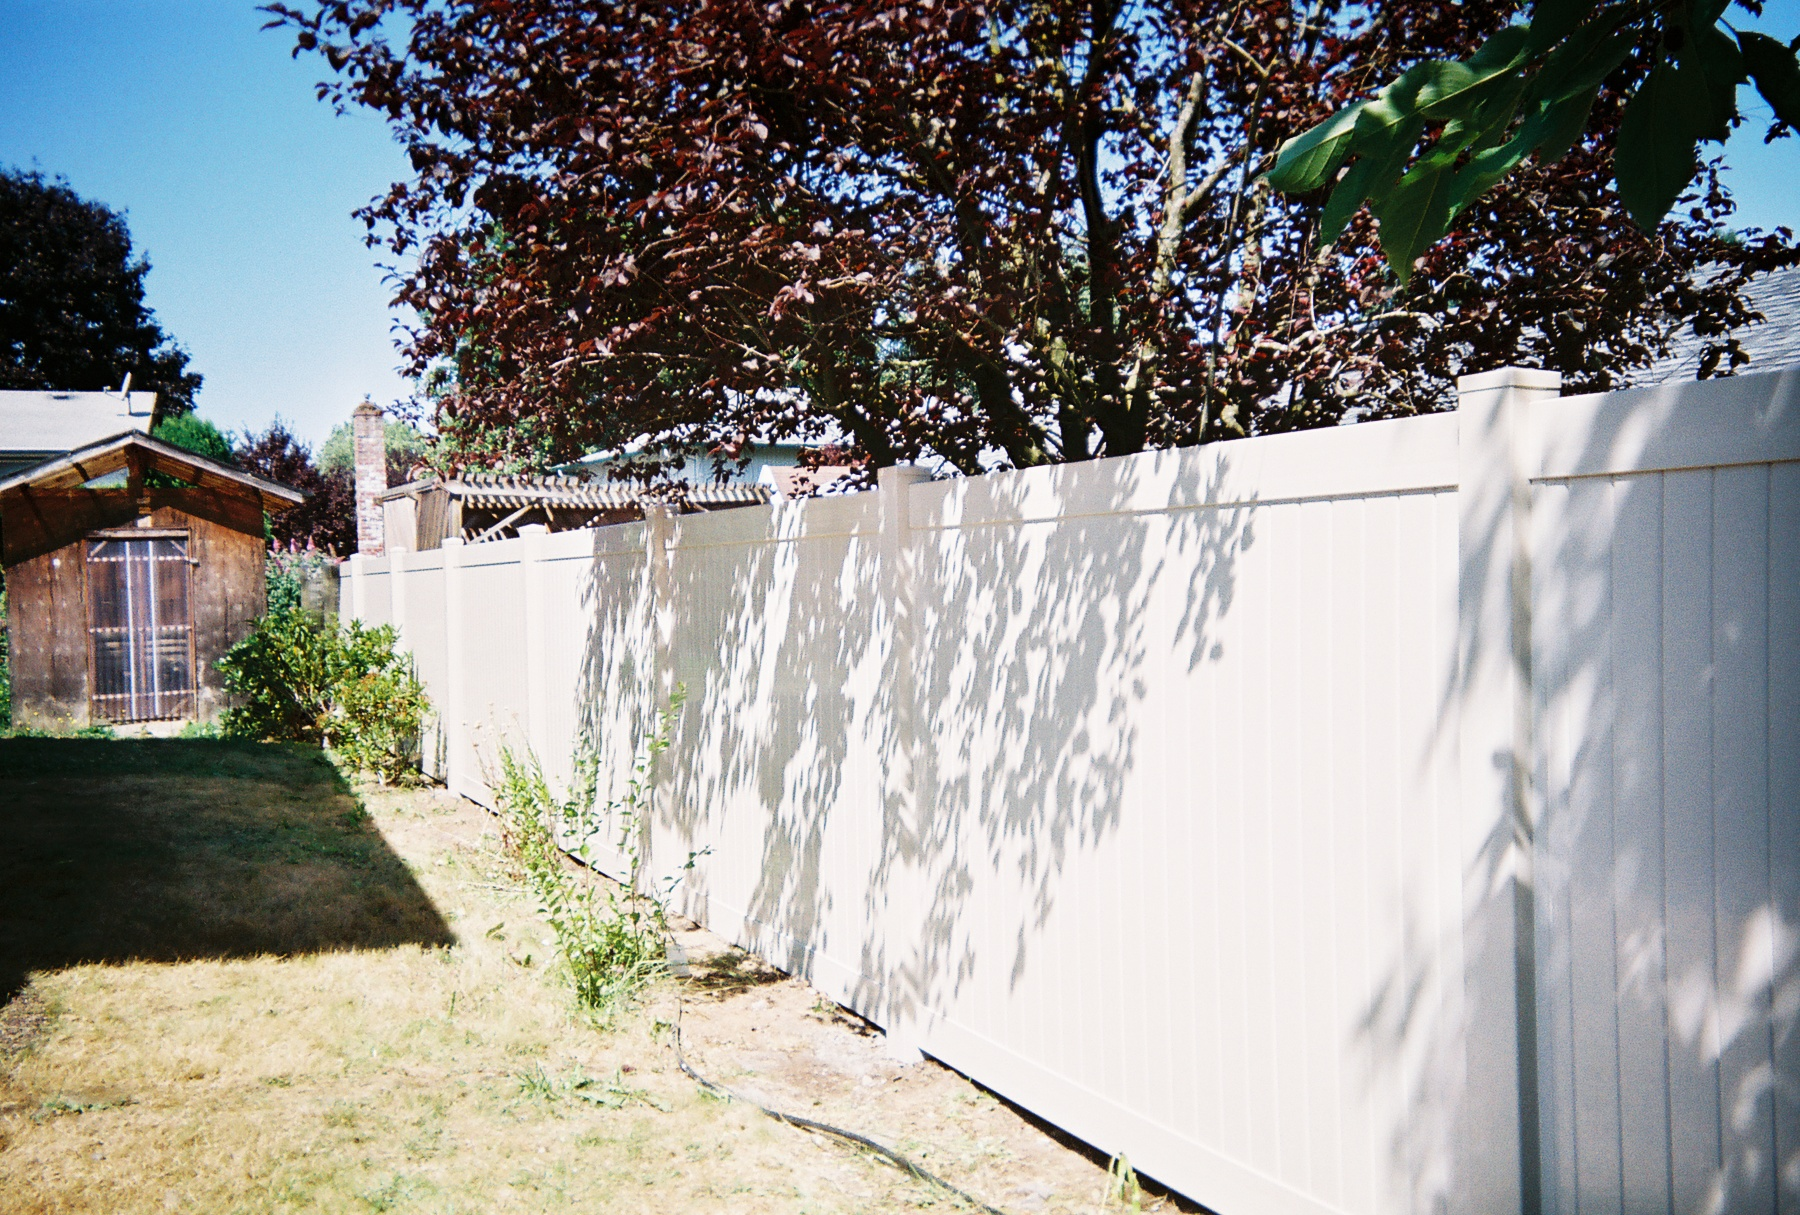 White Vinyl Fence maximize your privacy in tight areas. Contact Vancouver Washington's Best Fence Builders. Providing the best in all your fence needs for over 35 years. Call: 360-254-2299 today